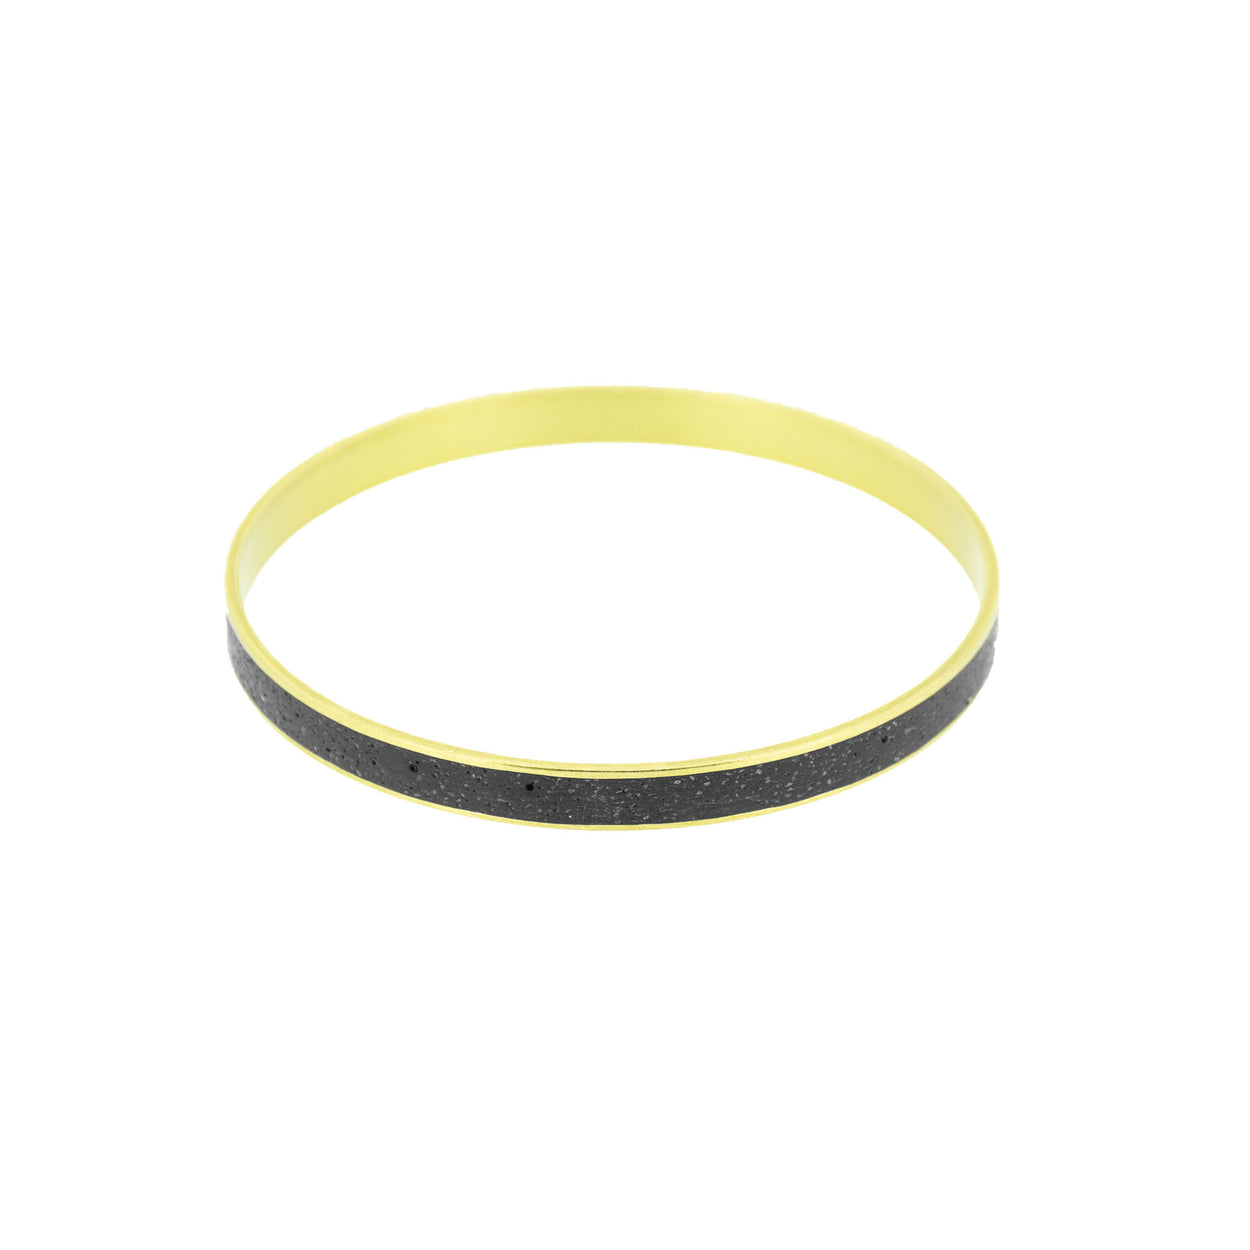 Standard Gauge Bangle Bracelet BRASS + CONCRETE Black